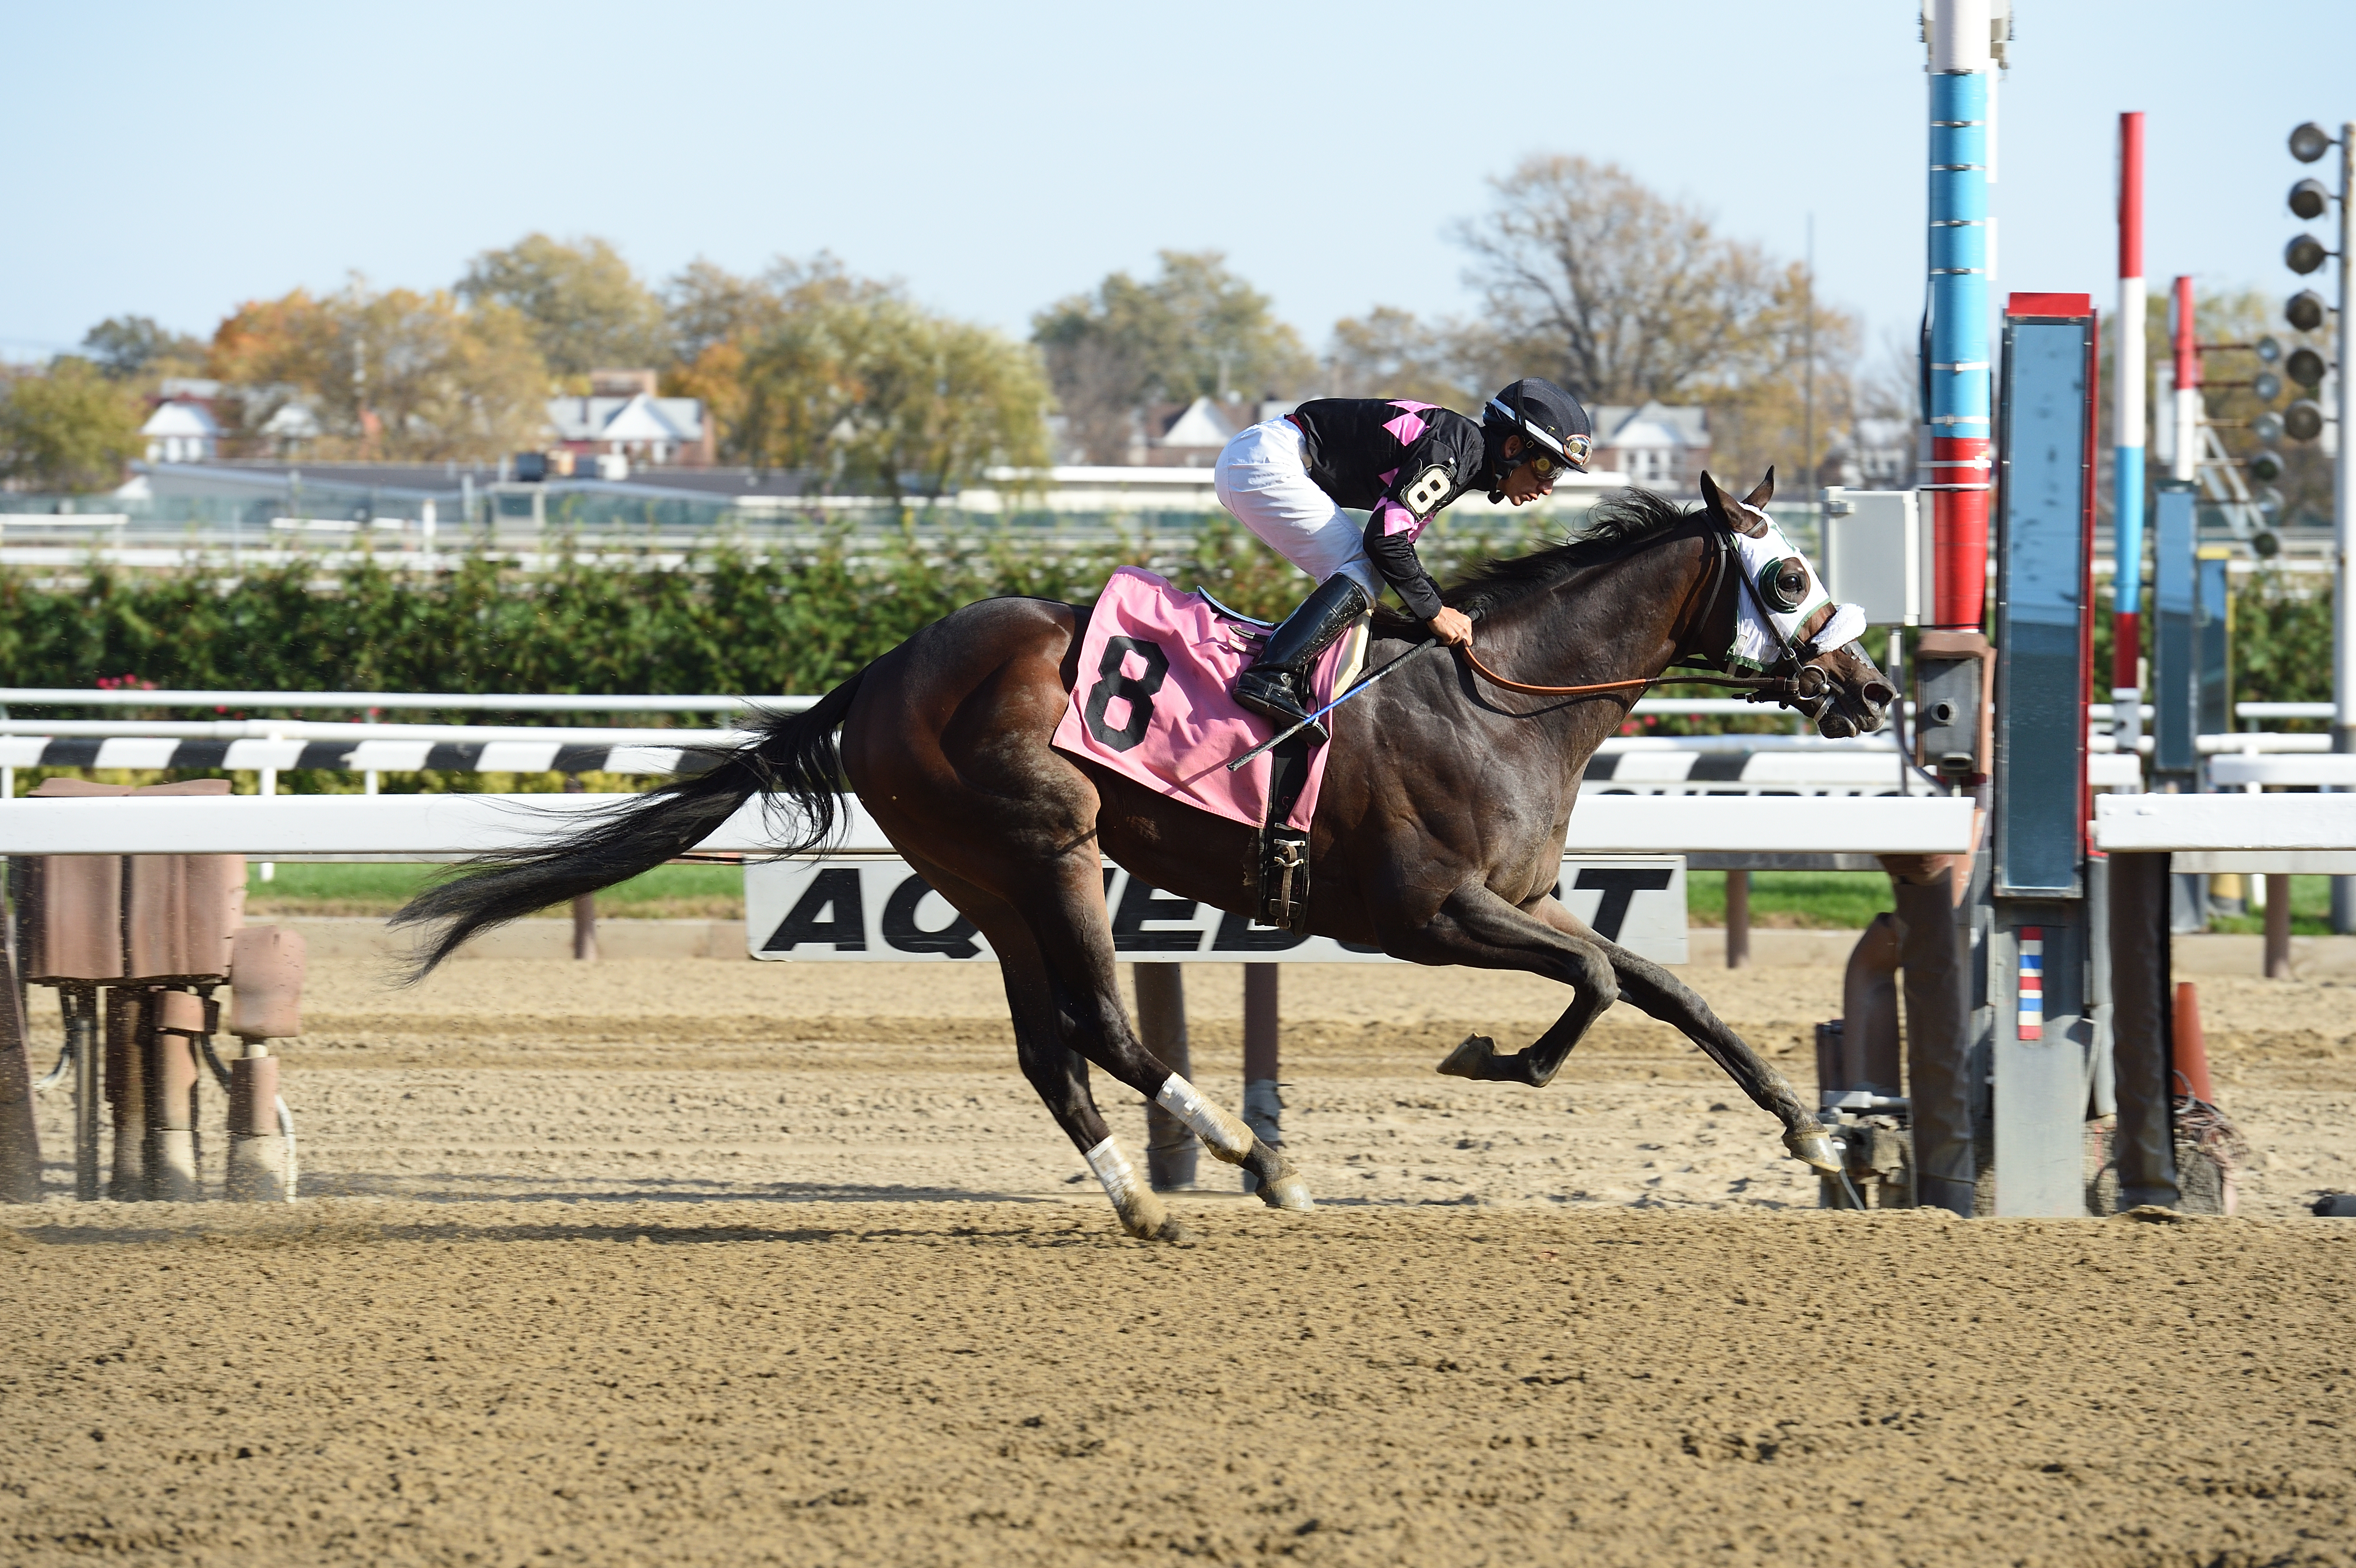 Realm, bred by the Morgan's Ford Farm, won a $67,000 allowance race November 5th at Aqueduct. Picture by Coglianese Photography.